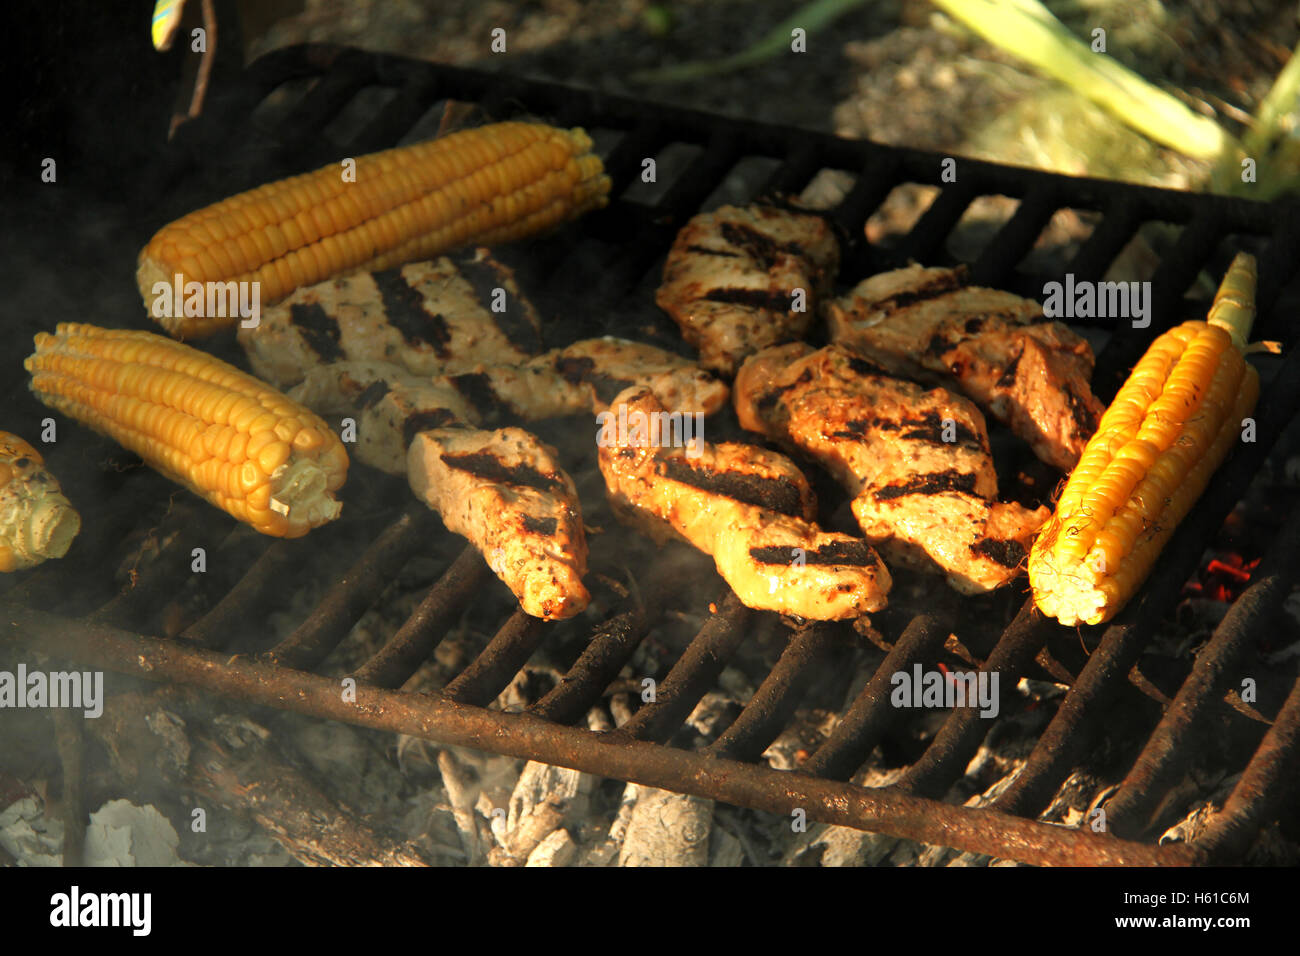 Grilling meat and corn at outdoors camping - Stock Image